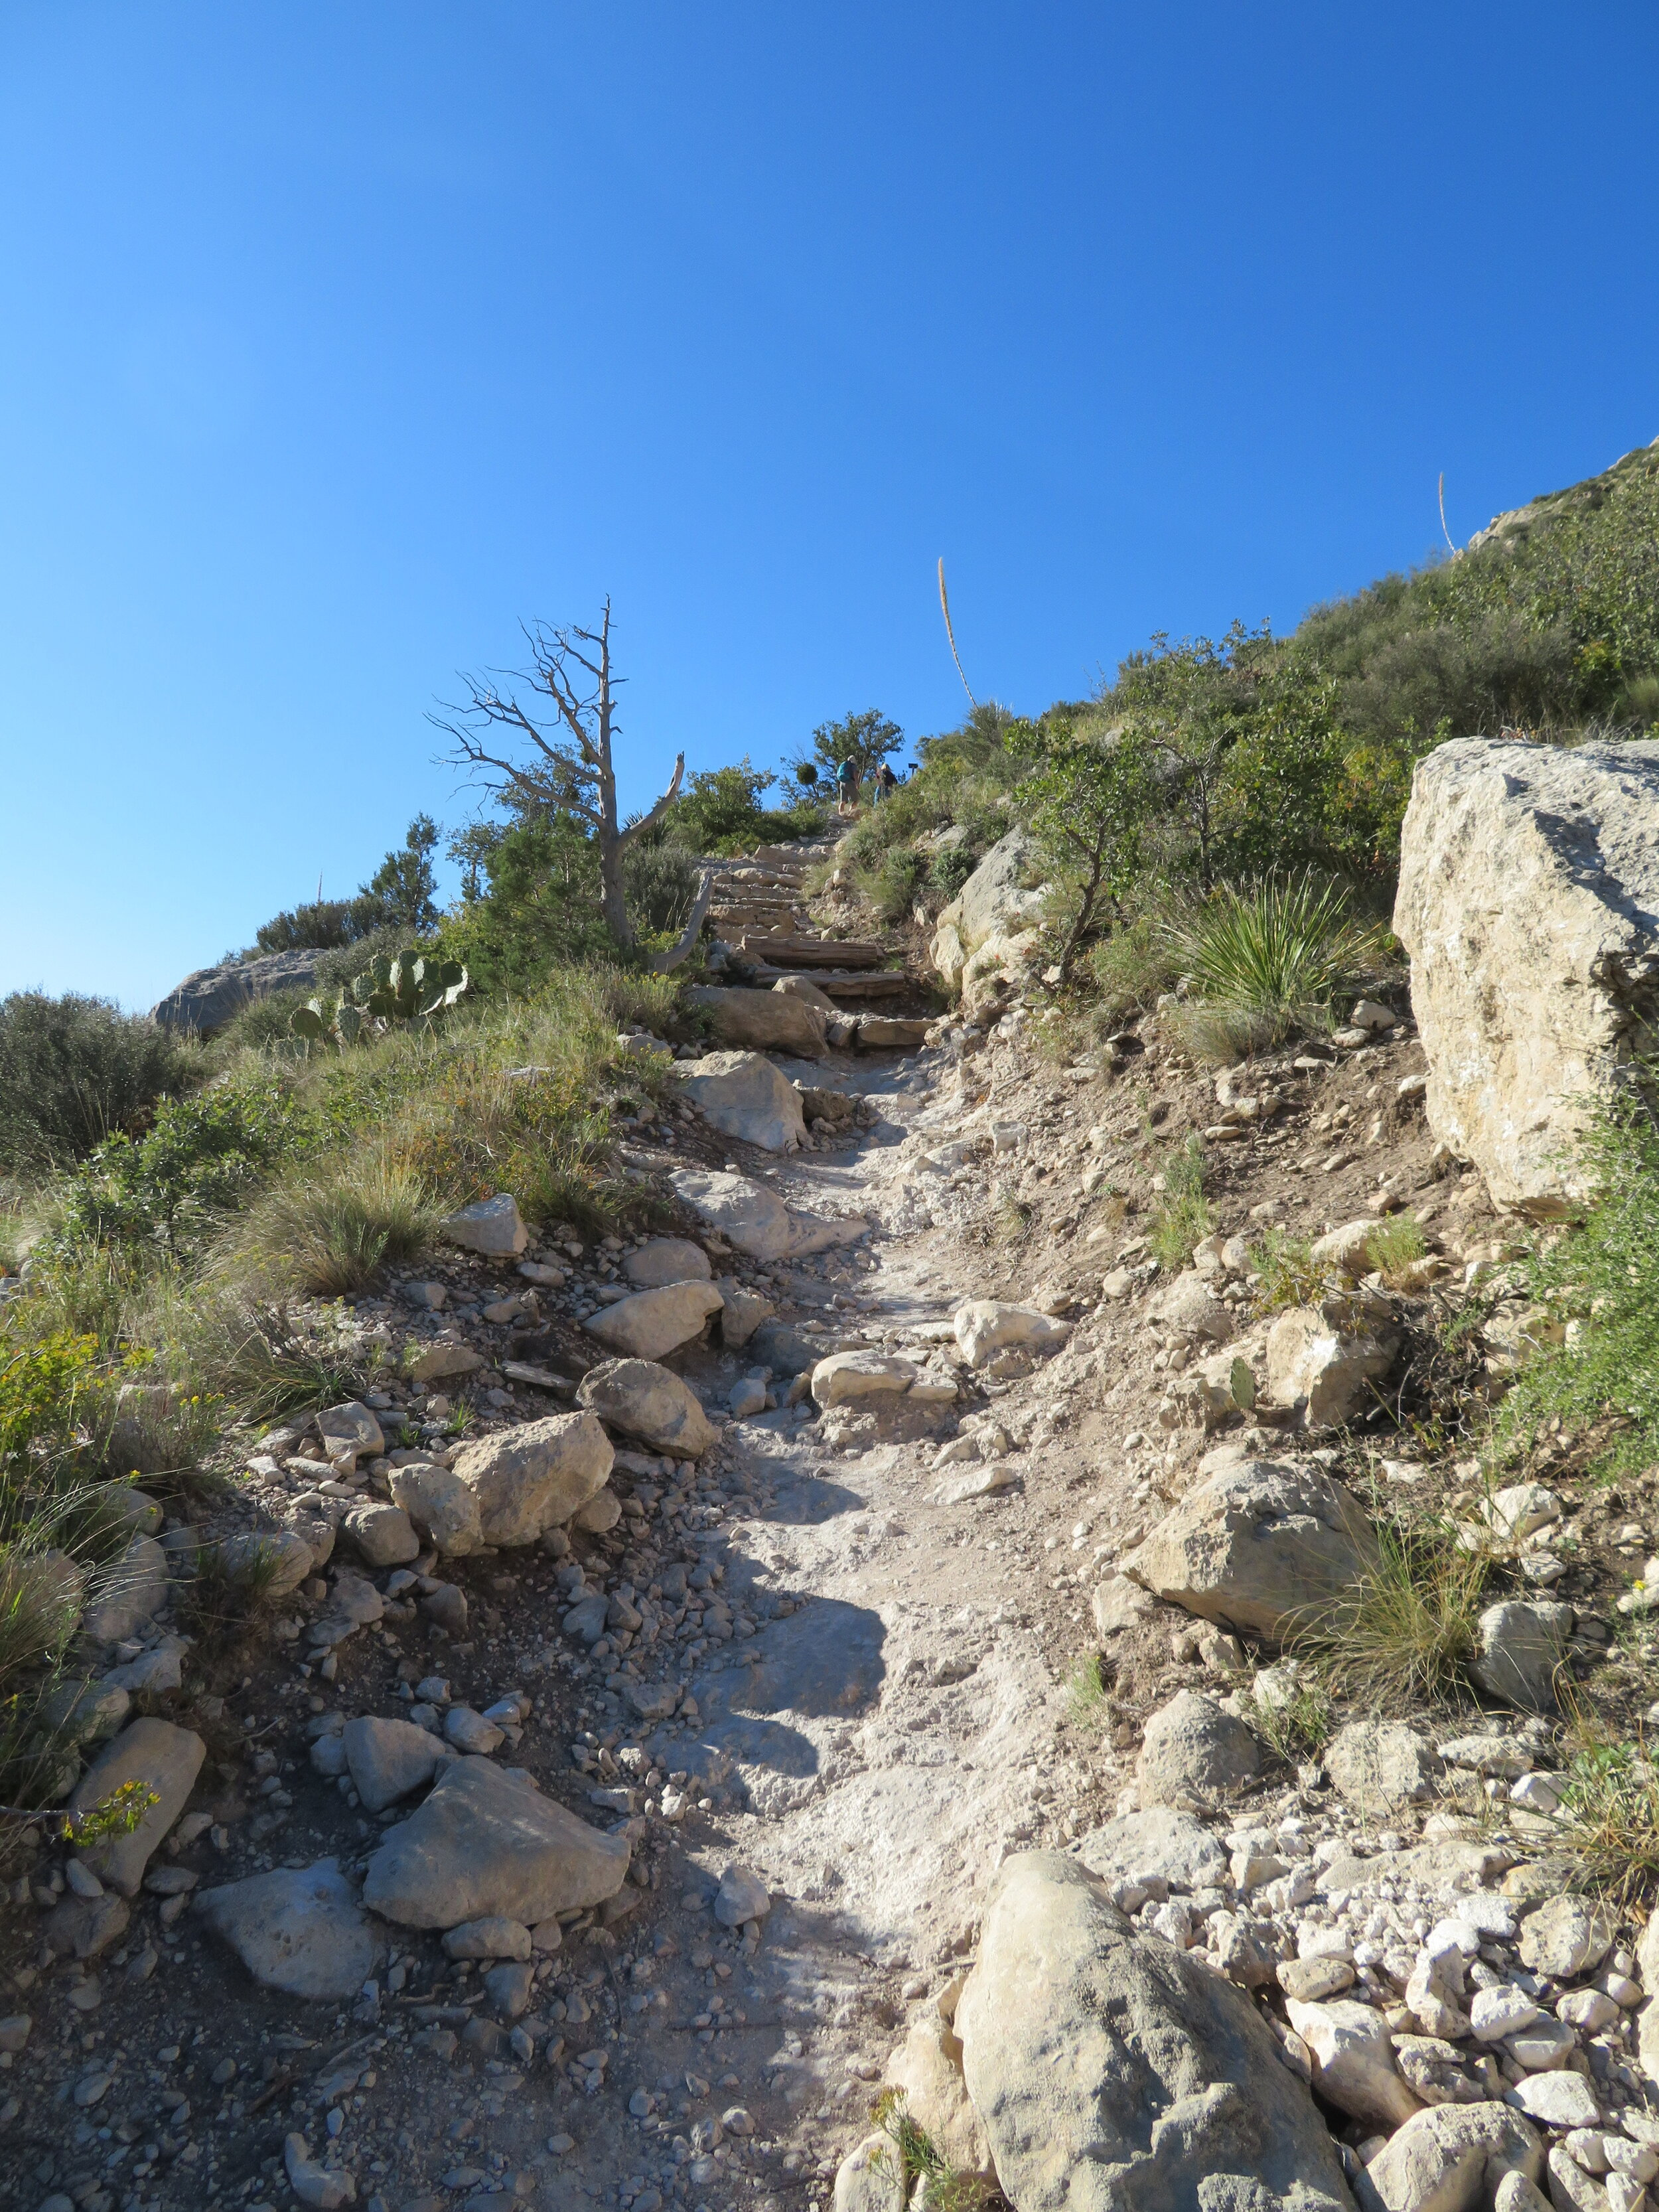 The peak trail was steep, rocky and all UP.